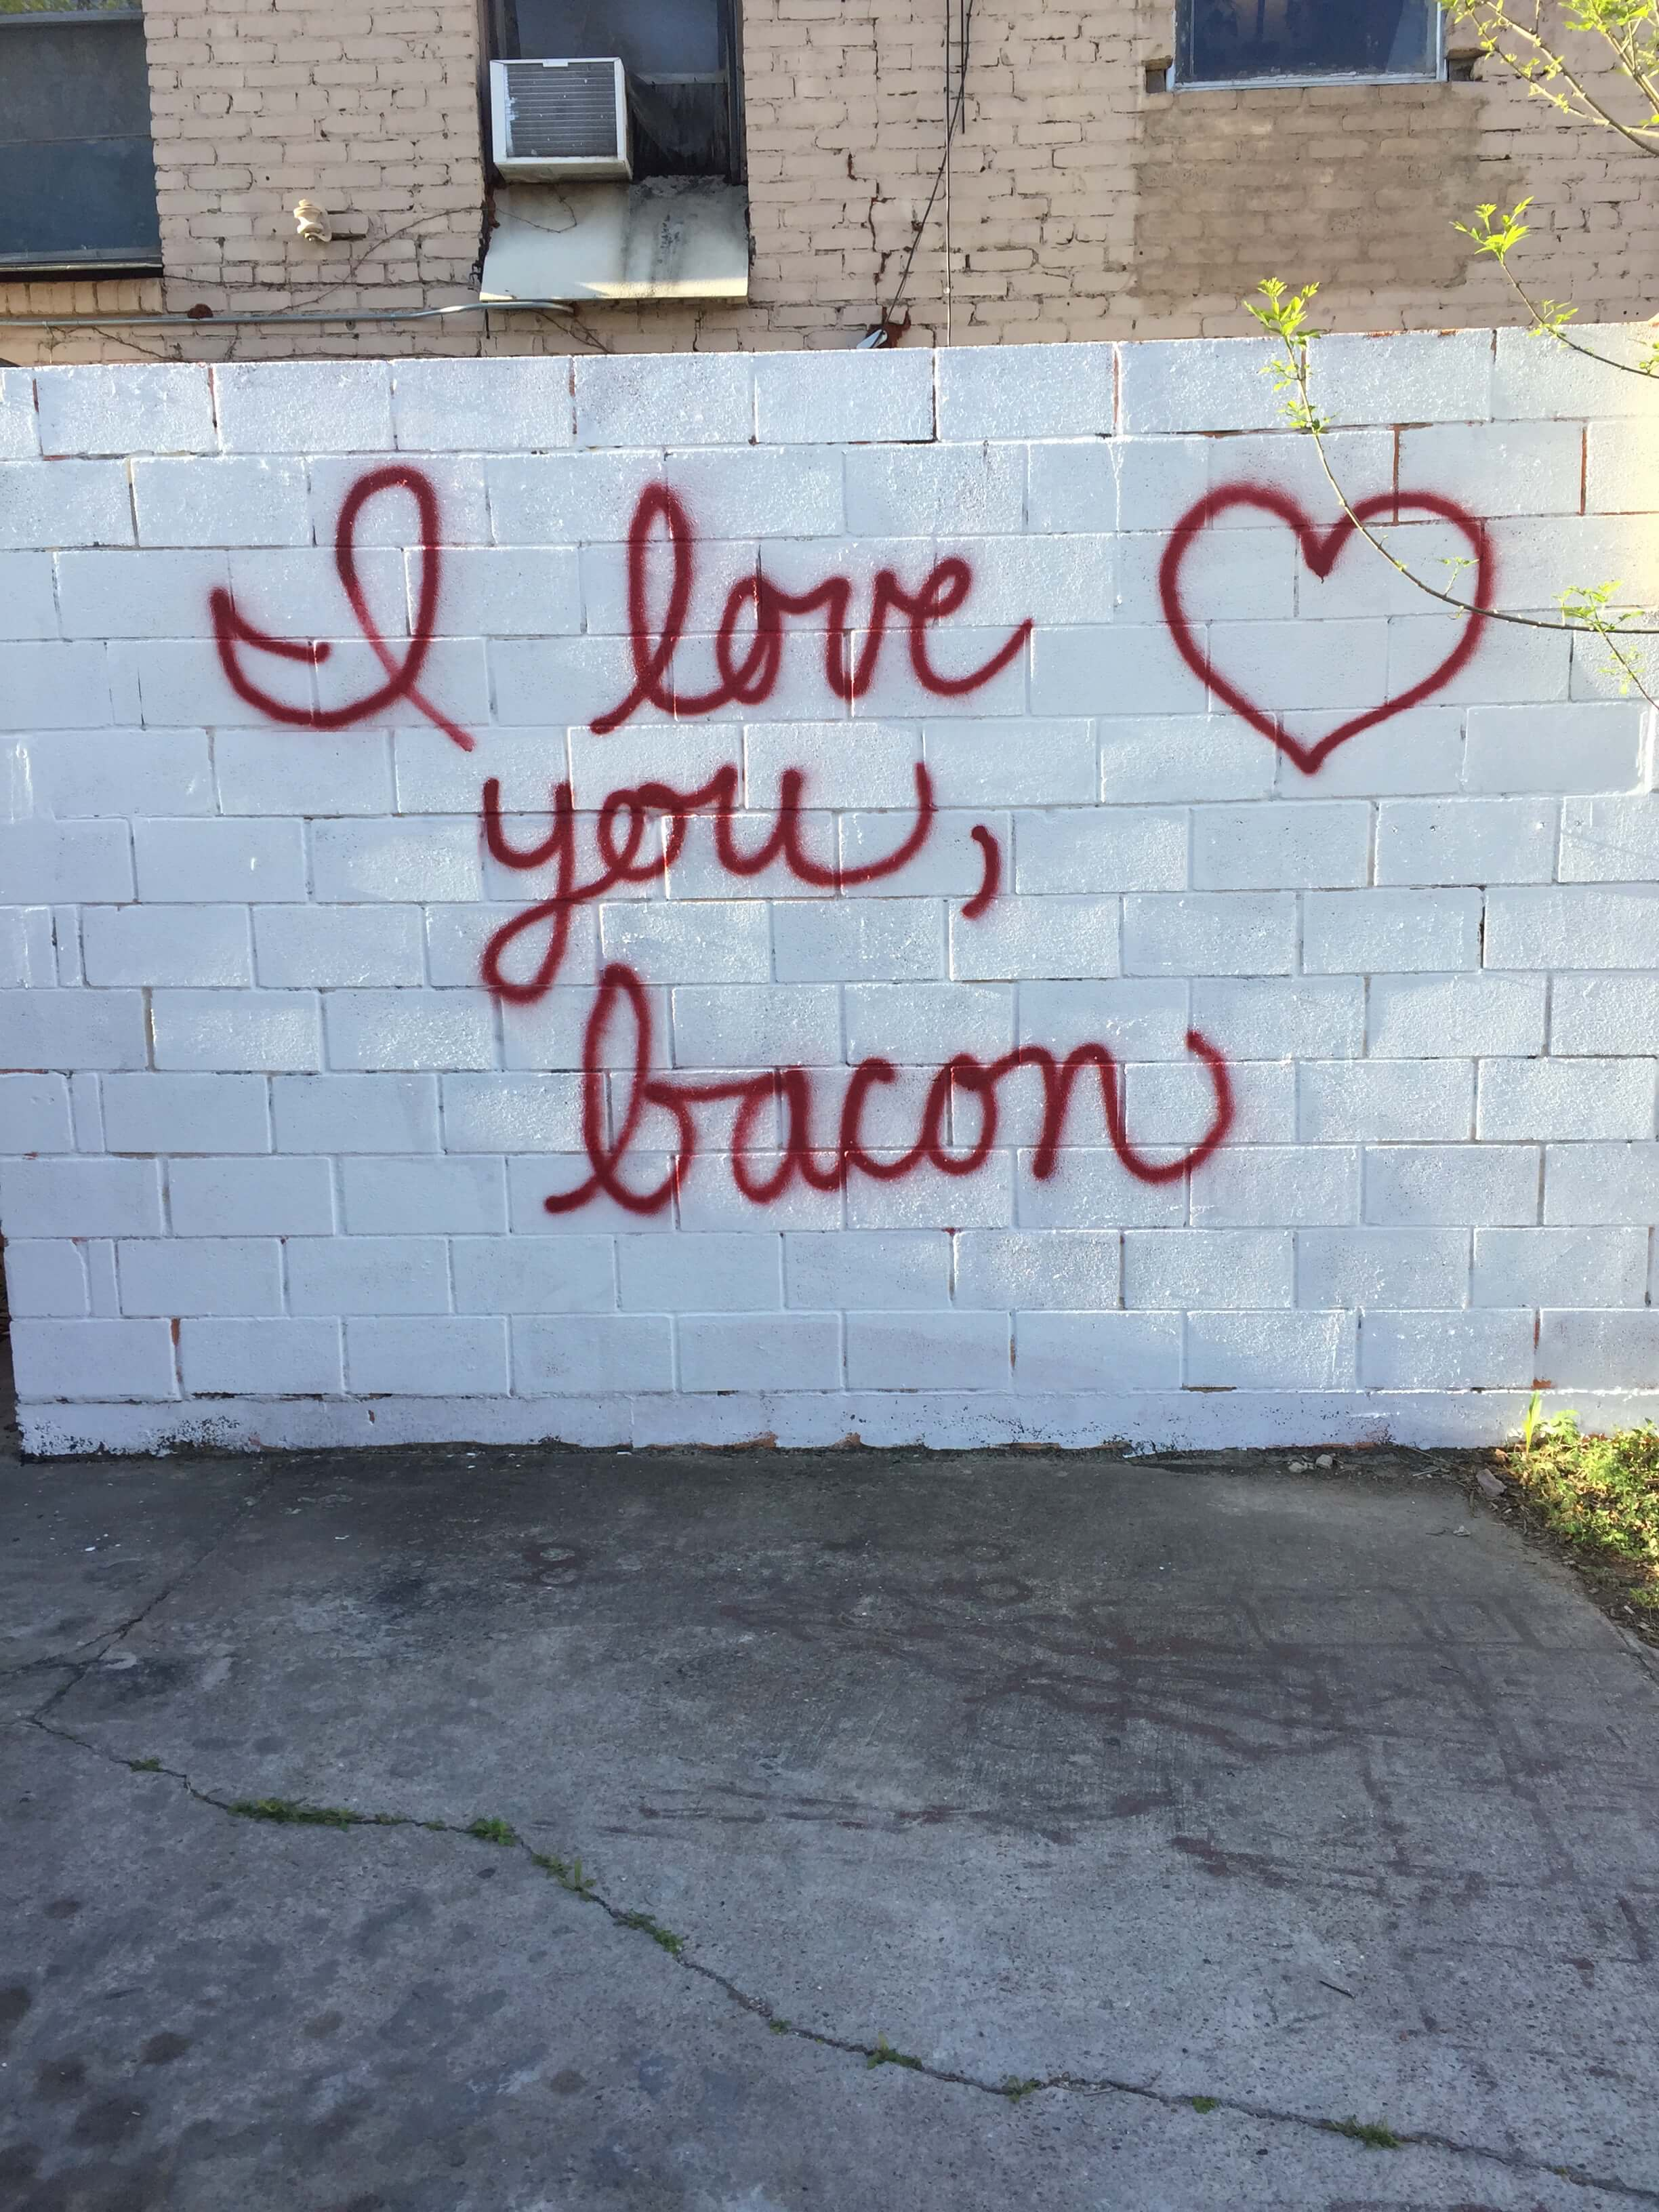 I love you, bacon. Located in East Austin.